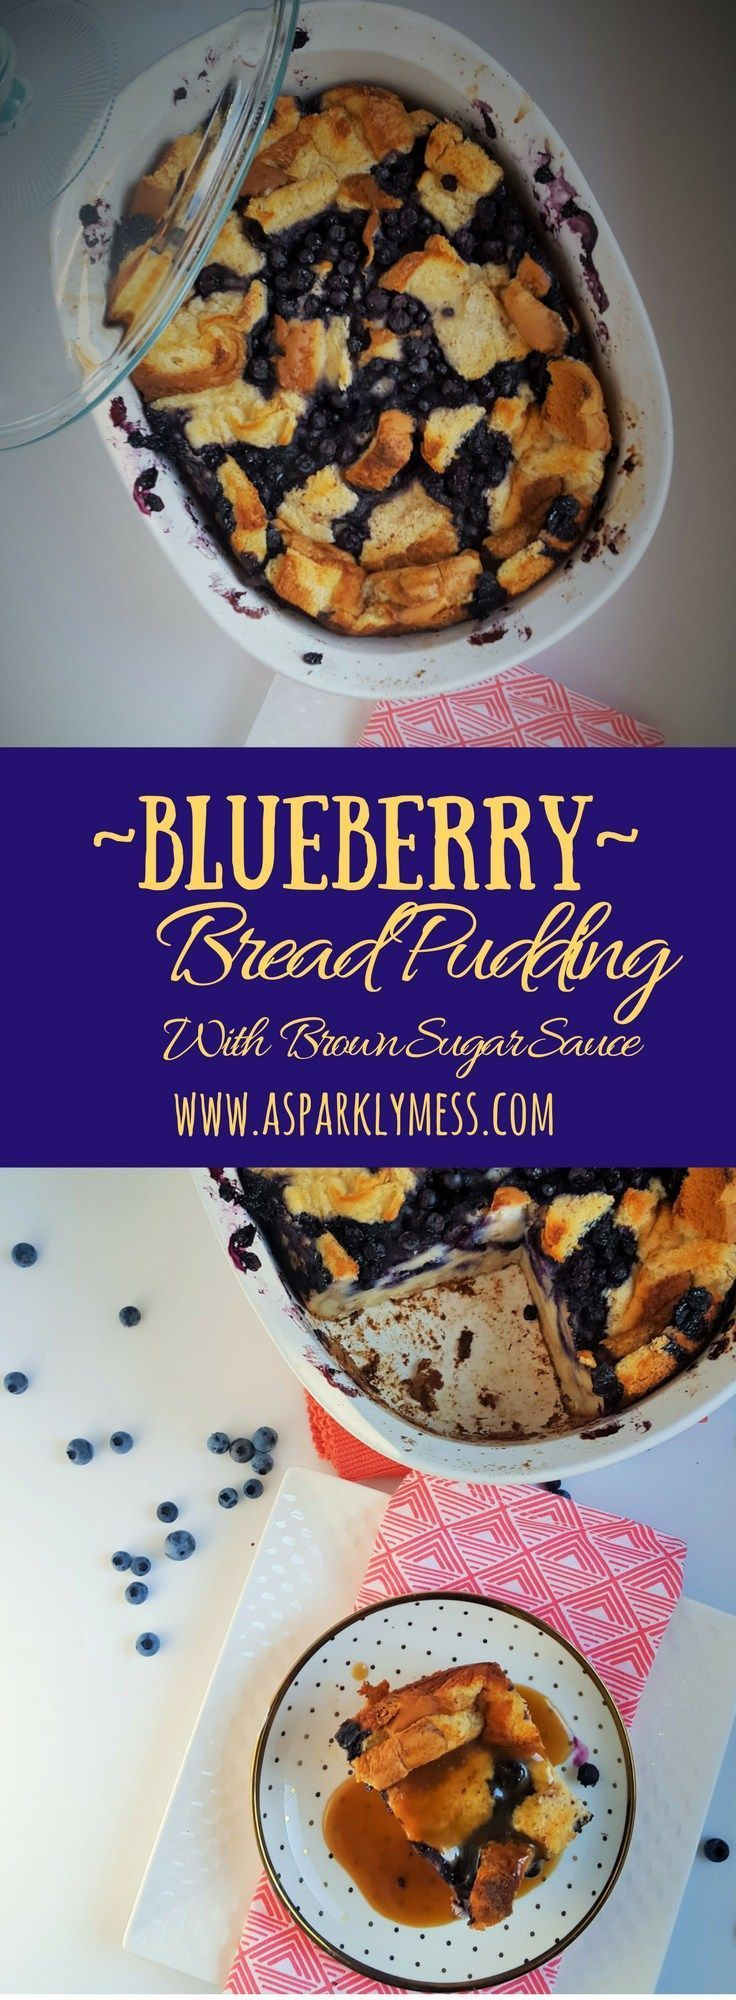 Easy Blueberry Bread Pudding with Brown Sugar Sauce. A decedent yet simple Blueberry Bread Pudding Perfect for any occasion and can be ready for the oven within minutes